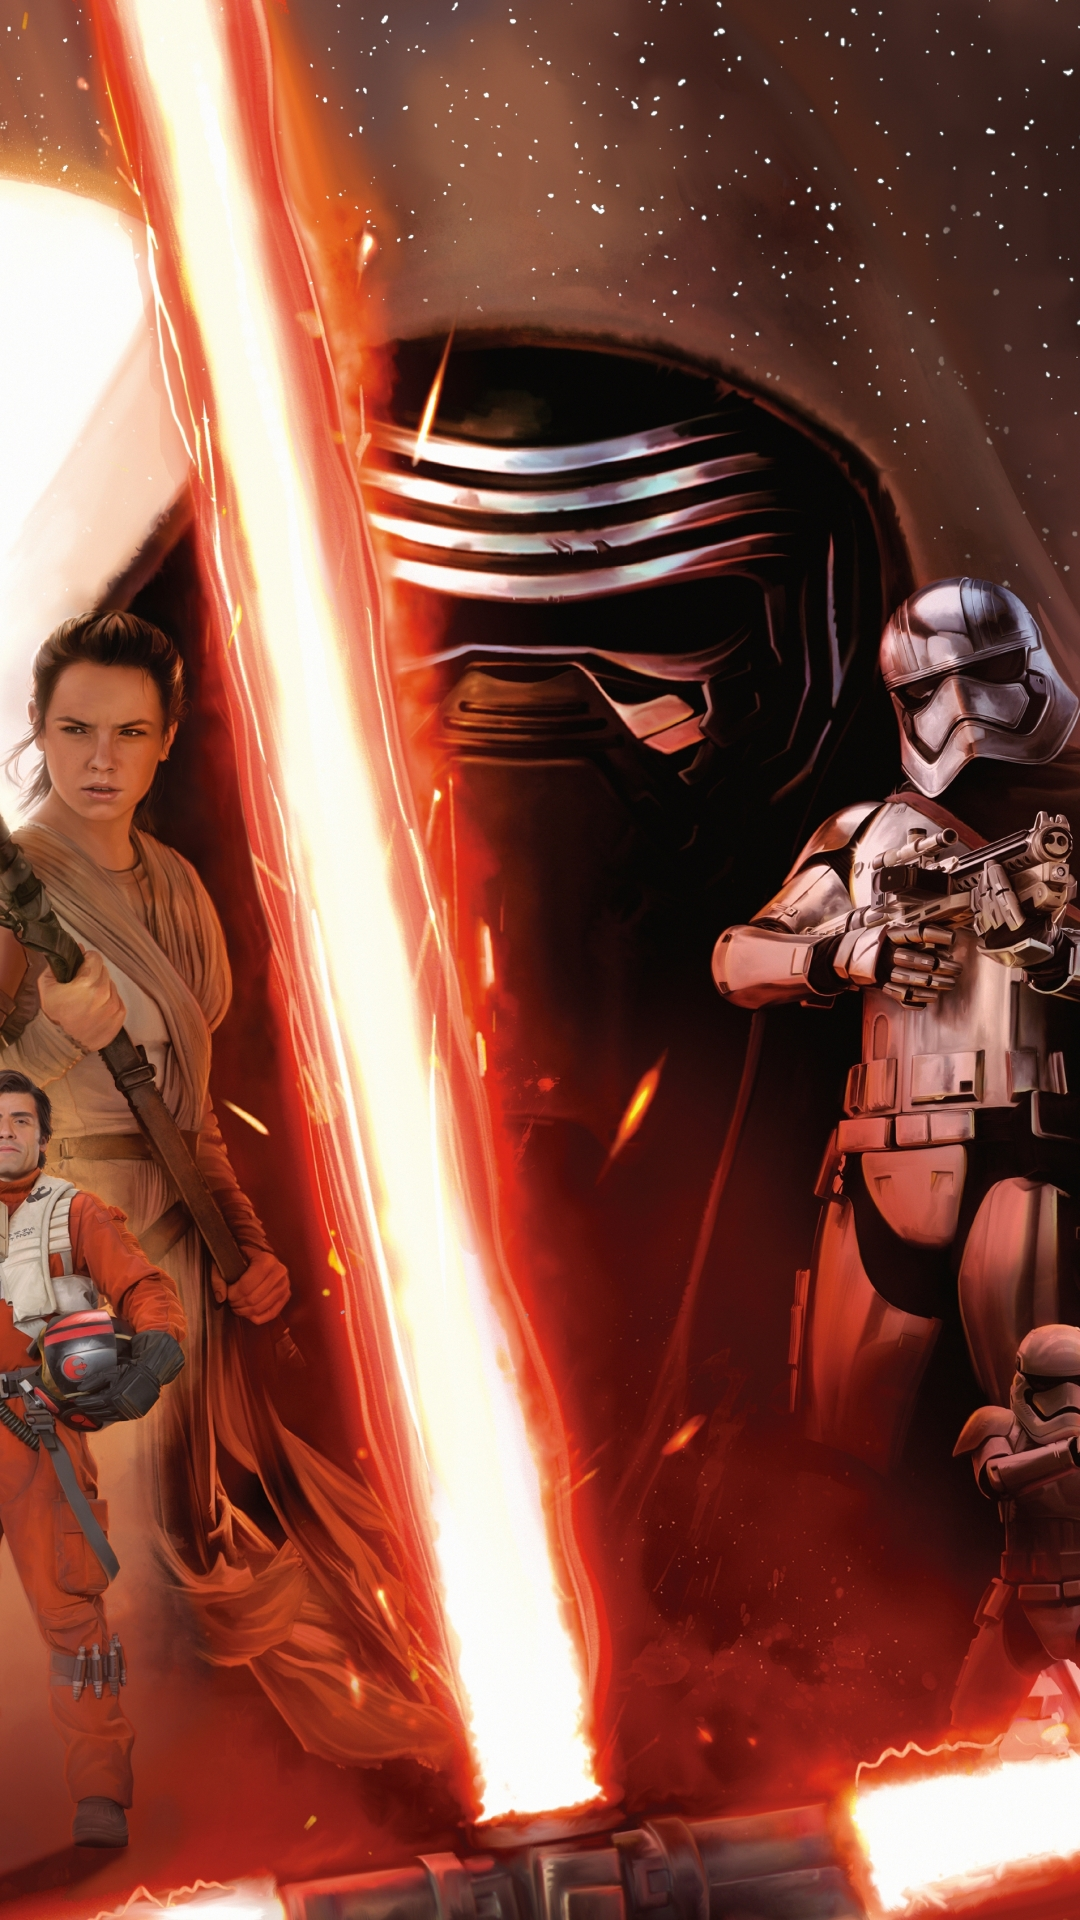 iphone 6 plus - movie/star wars episode vii: the force awakens